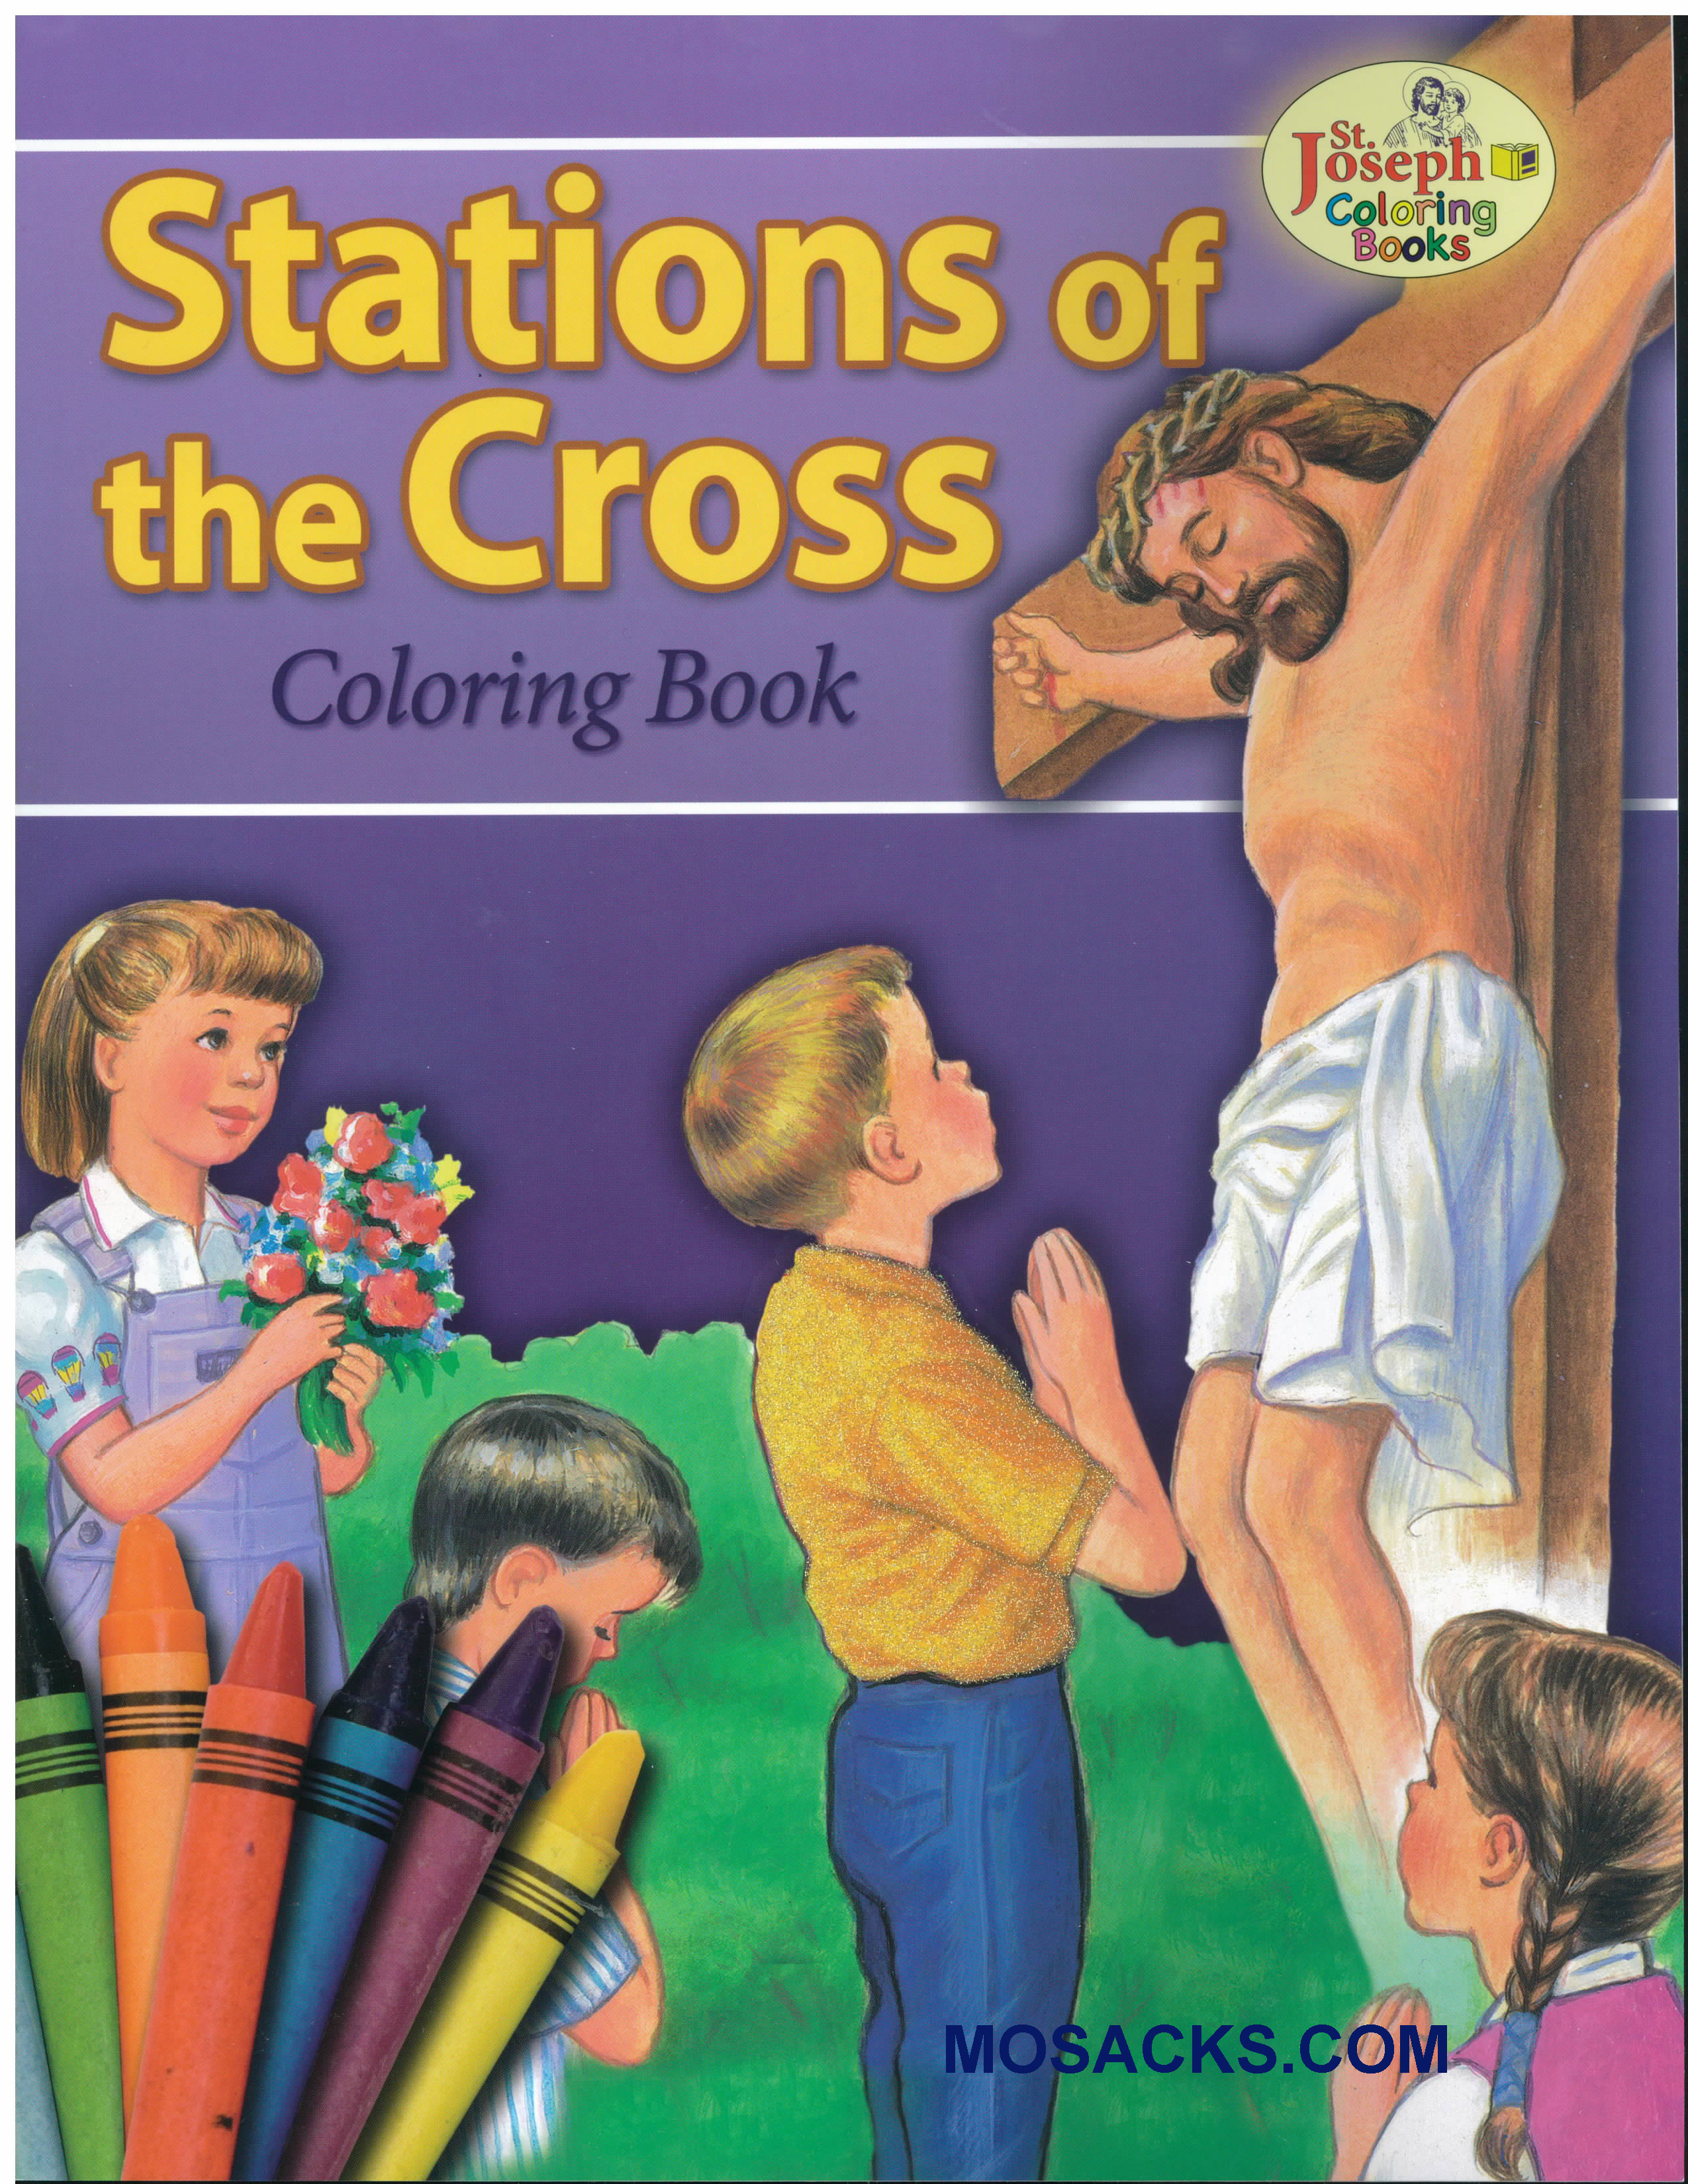 St Joseph Educational Coloring Book Stations Of The Cross-978089942689-1